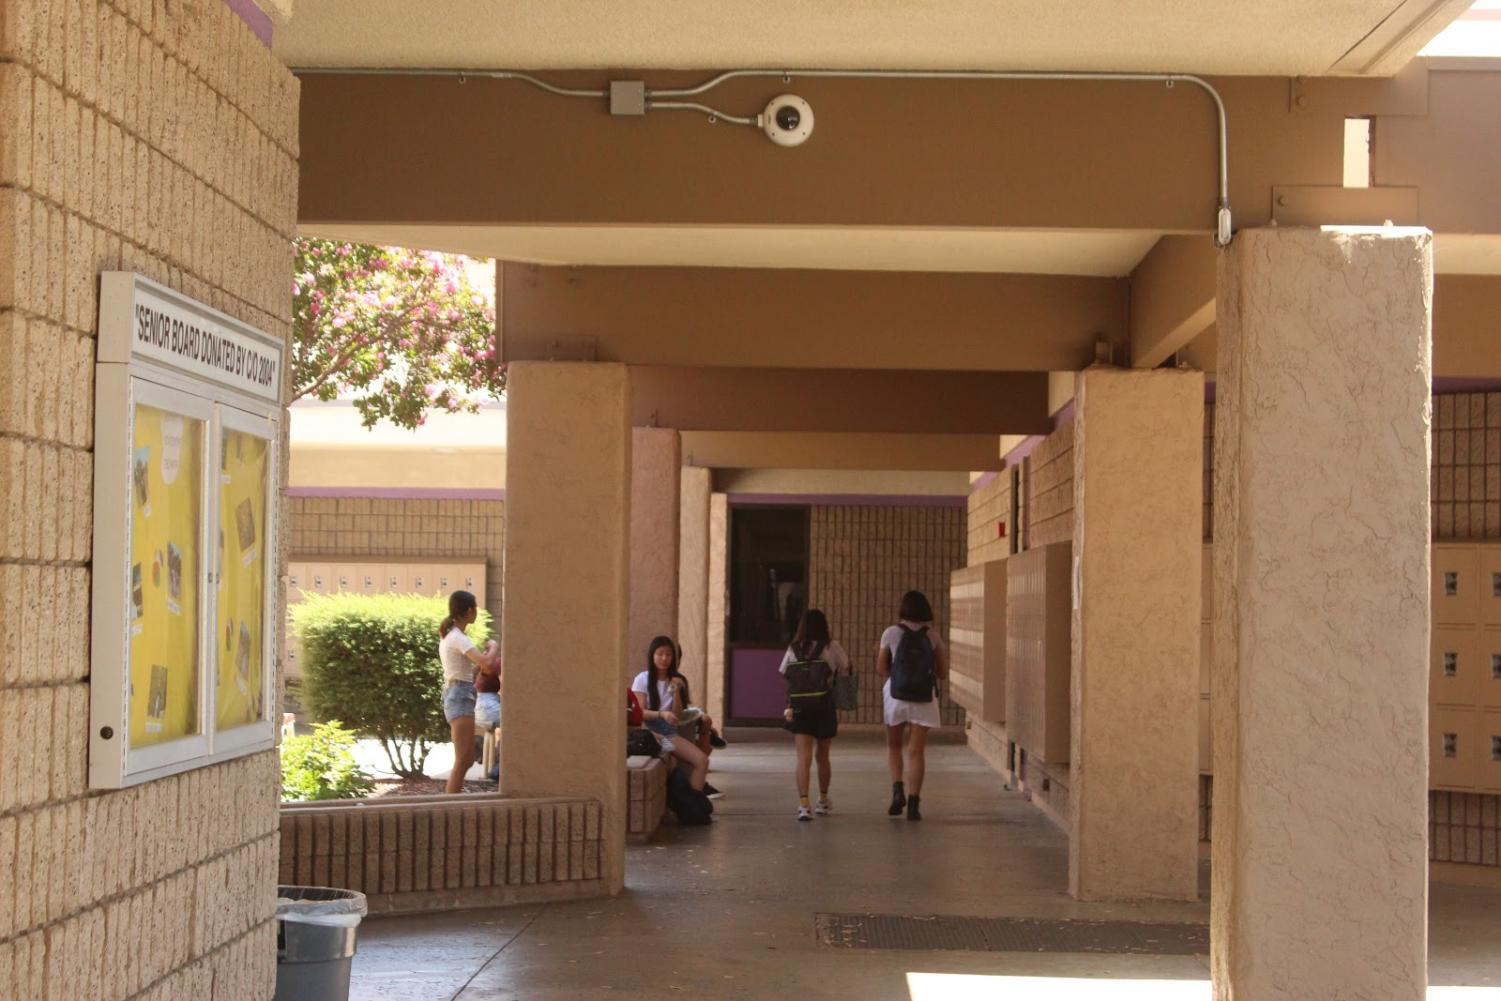 Security cameras can be seen in the hallways and on exterior walls on campus.